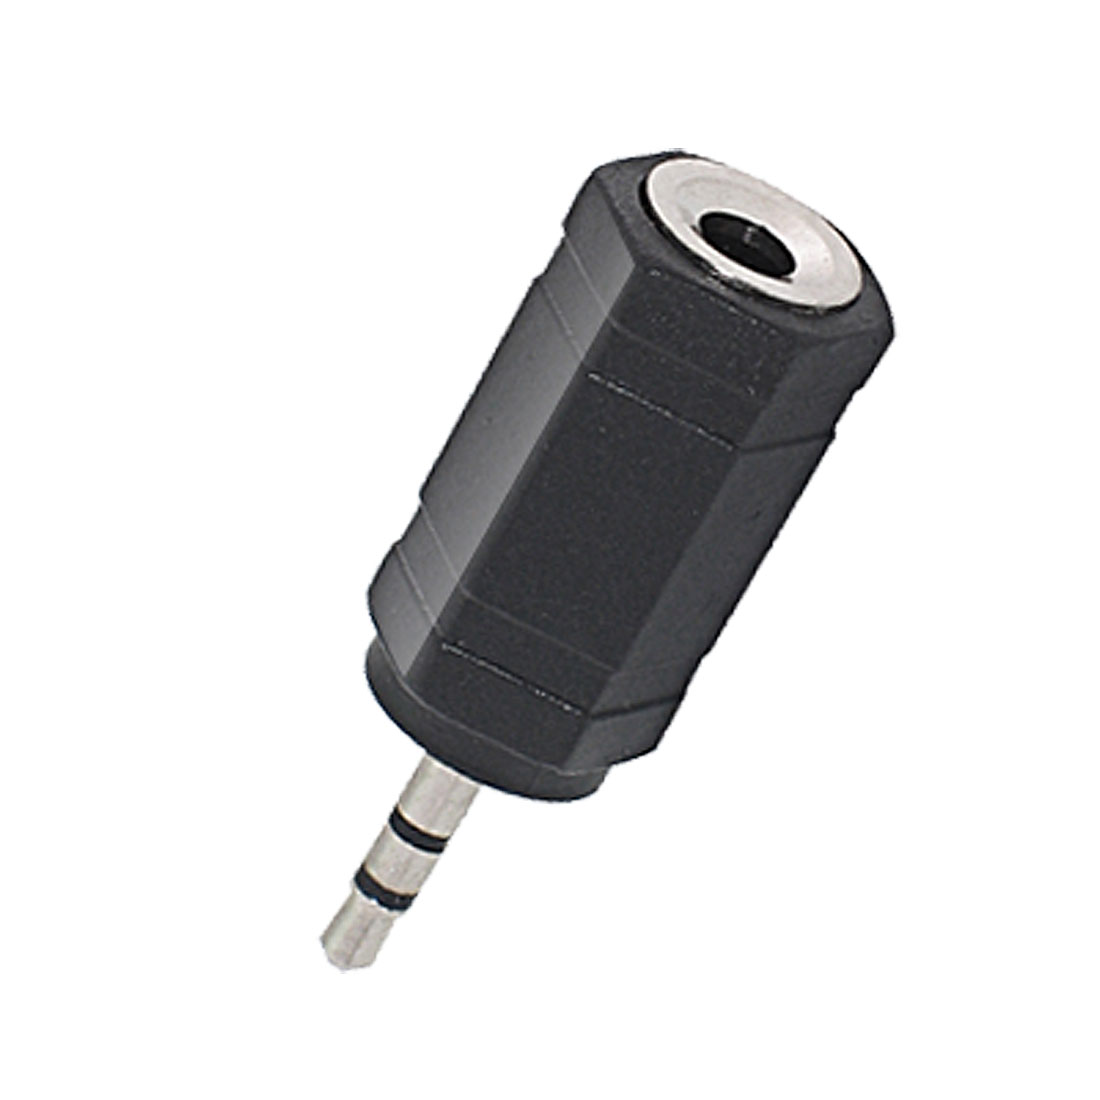 Audio Conversion Adapter - 2.5mm STEREO TO 3.5mm STEREO JACK